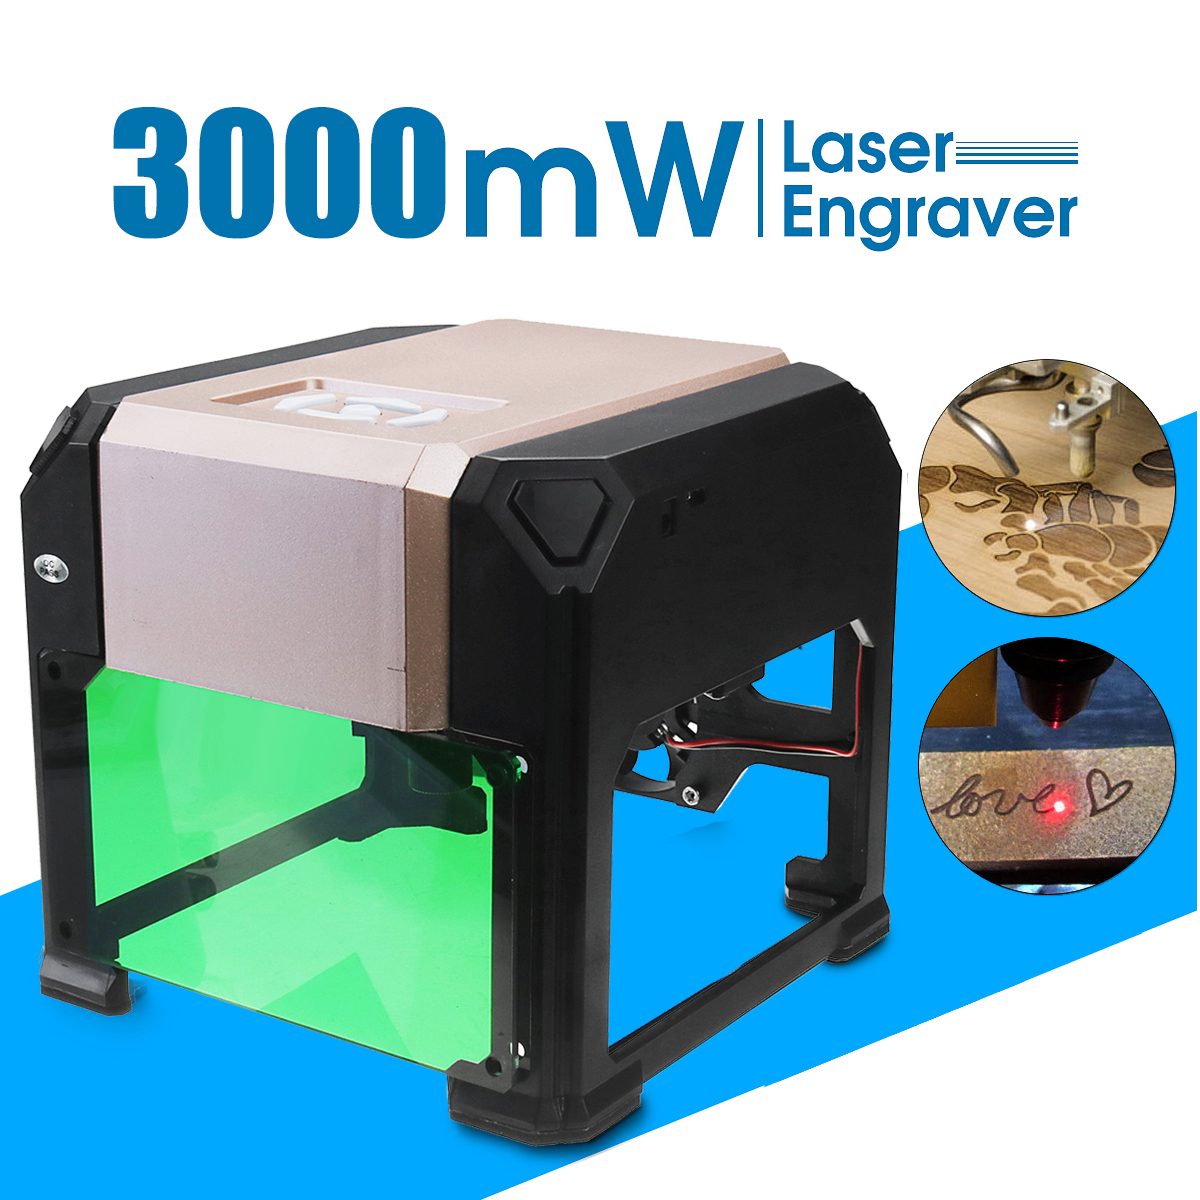 3000 MW Laser Engraver DIY Logo Mark Printer Cutter Laser Engraving Carving Machine Home Use FOR WIN For Mac OS System